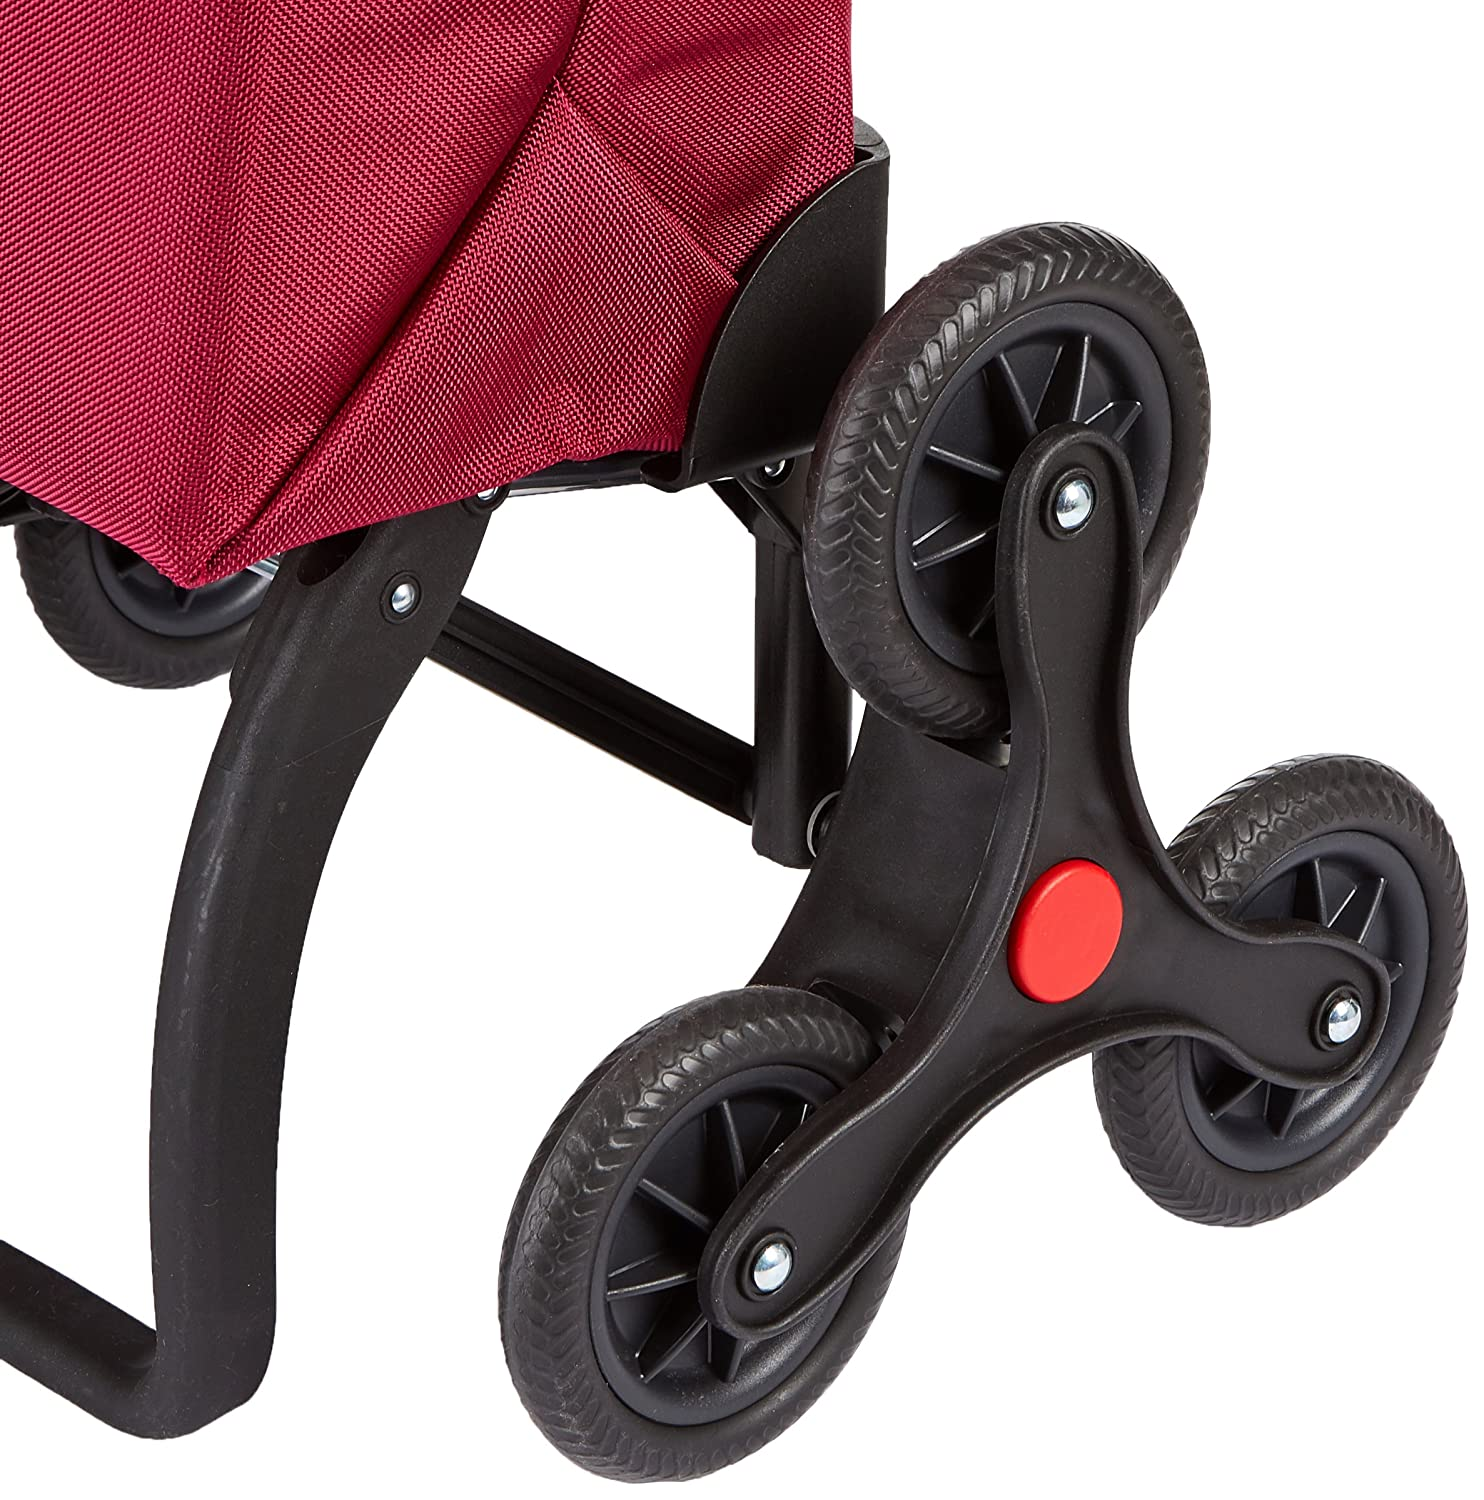 Rolser Paris MF RD6 - Carro de la compra de 6 ruedas, especial escaleras, color bassi: Amazon.es: Hogar